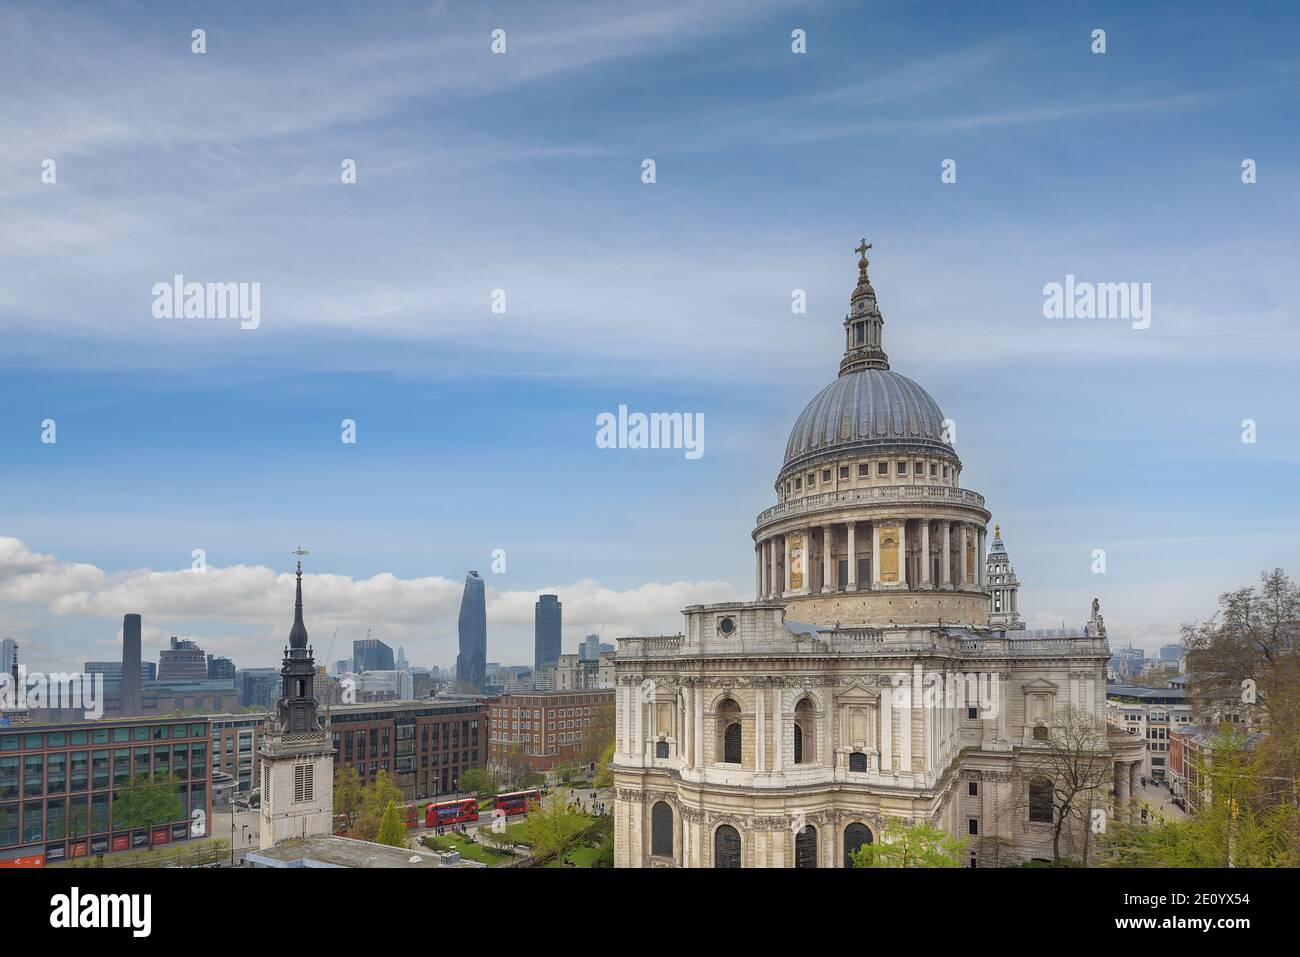 St Paul's Cathedral in London, UK. Stock Photo